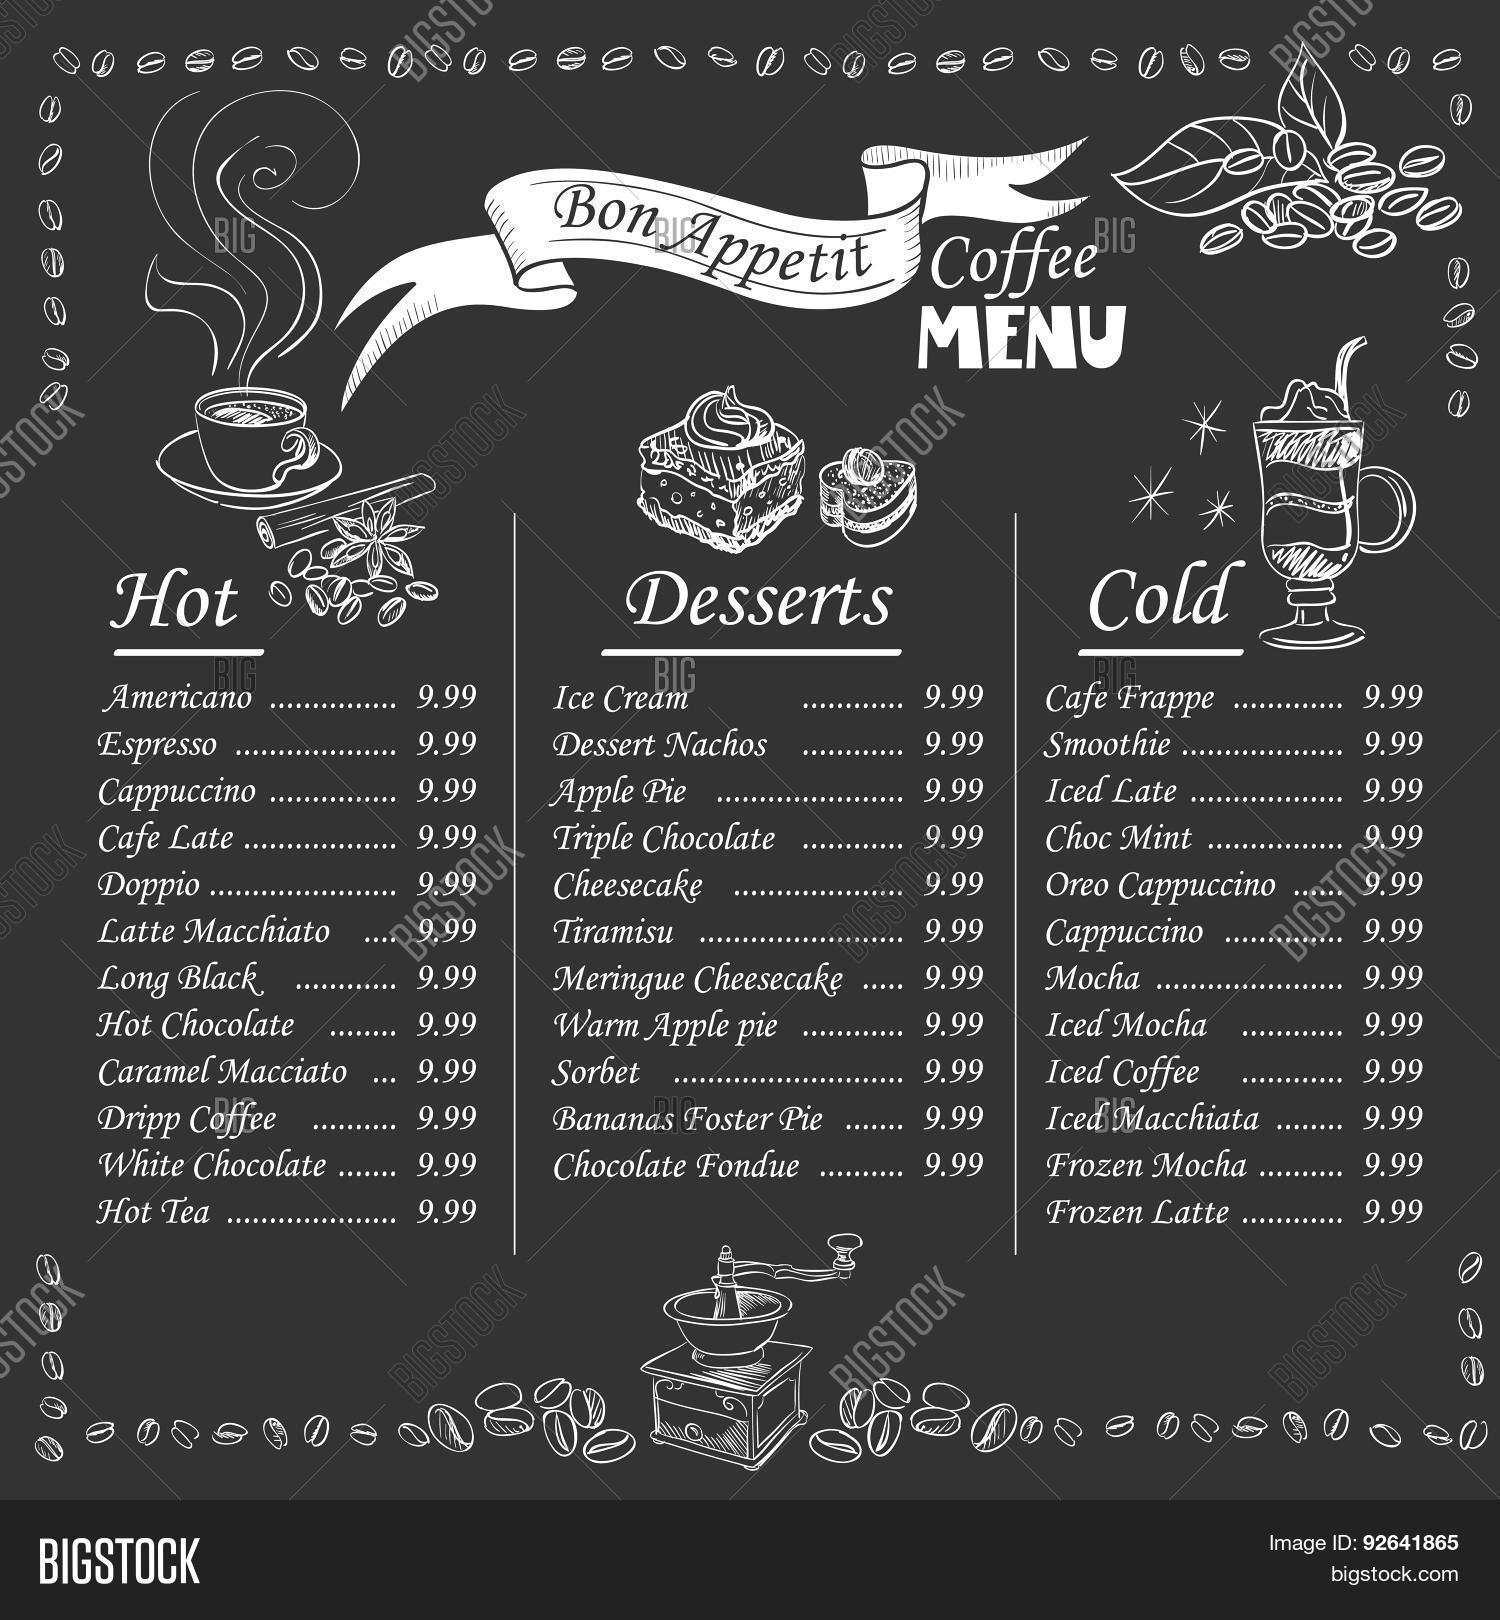 irish menu templates - coffee menu on chalkboard vector photo bigstock